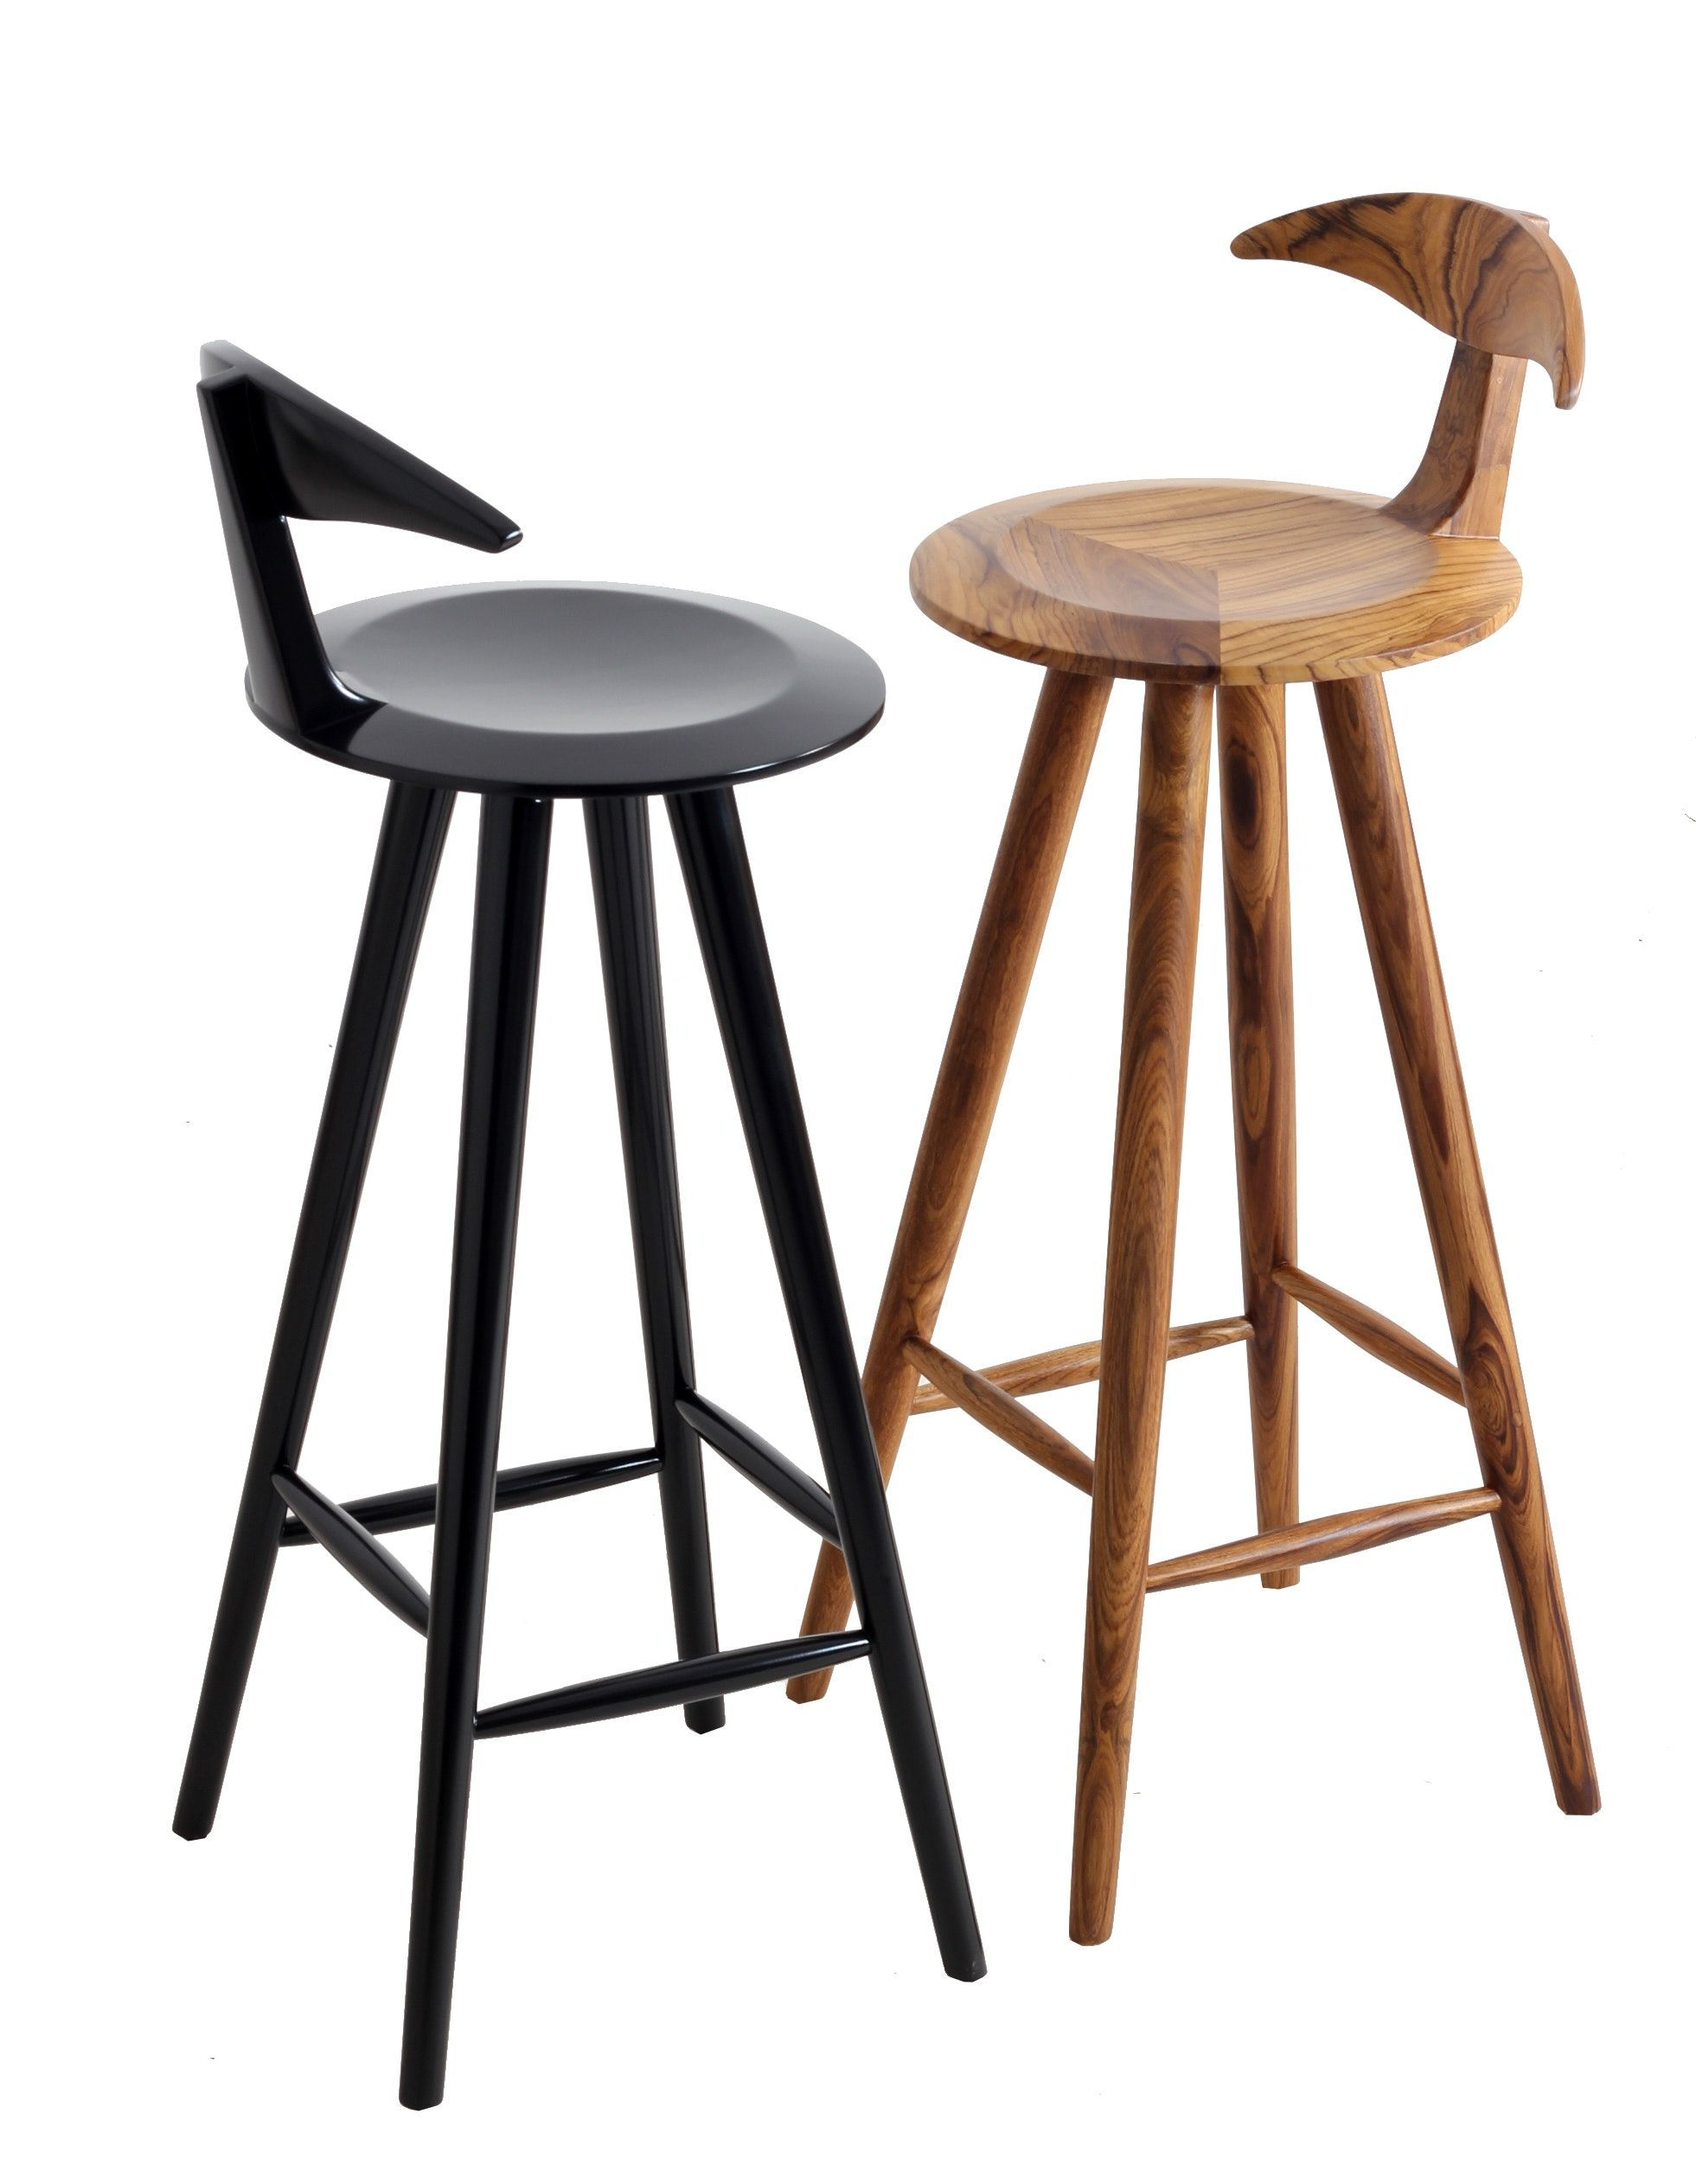 Udita A Wooden Bar Chair Contemporary Barstools Amp Counter Stools Dering Hall In 2020 Bar Chairs Design Bar Chairs Wooden Bar Stools